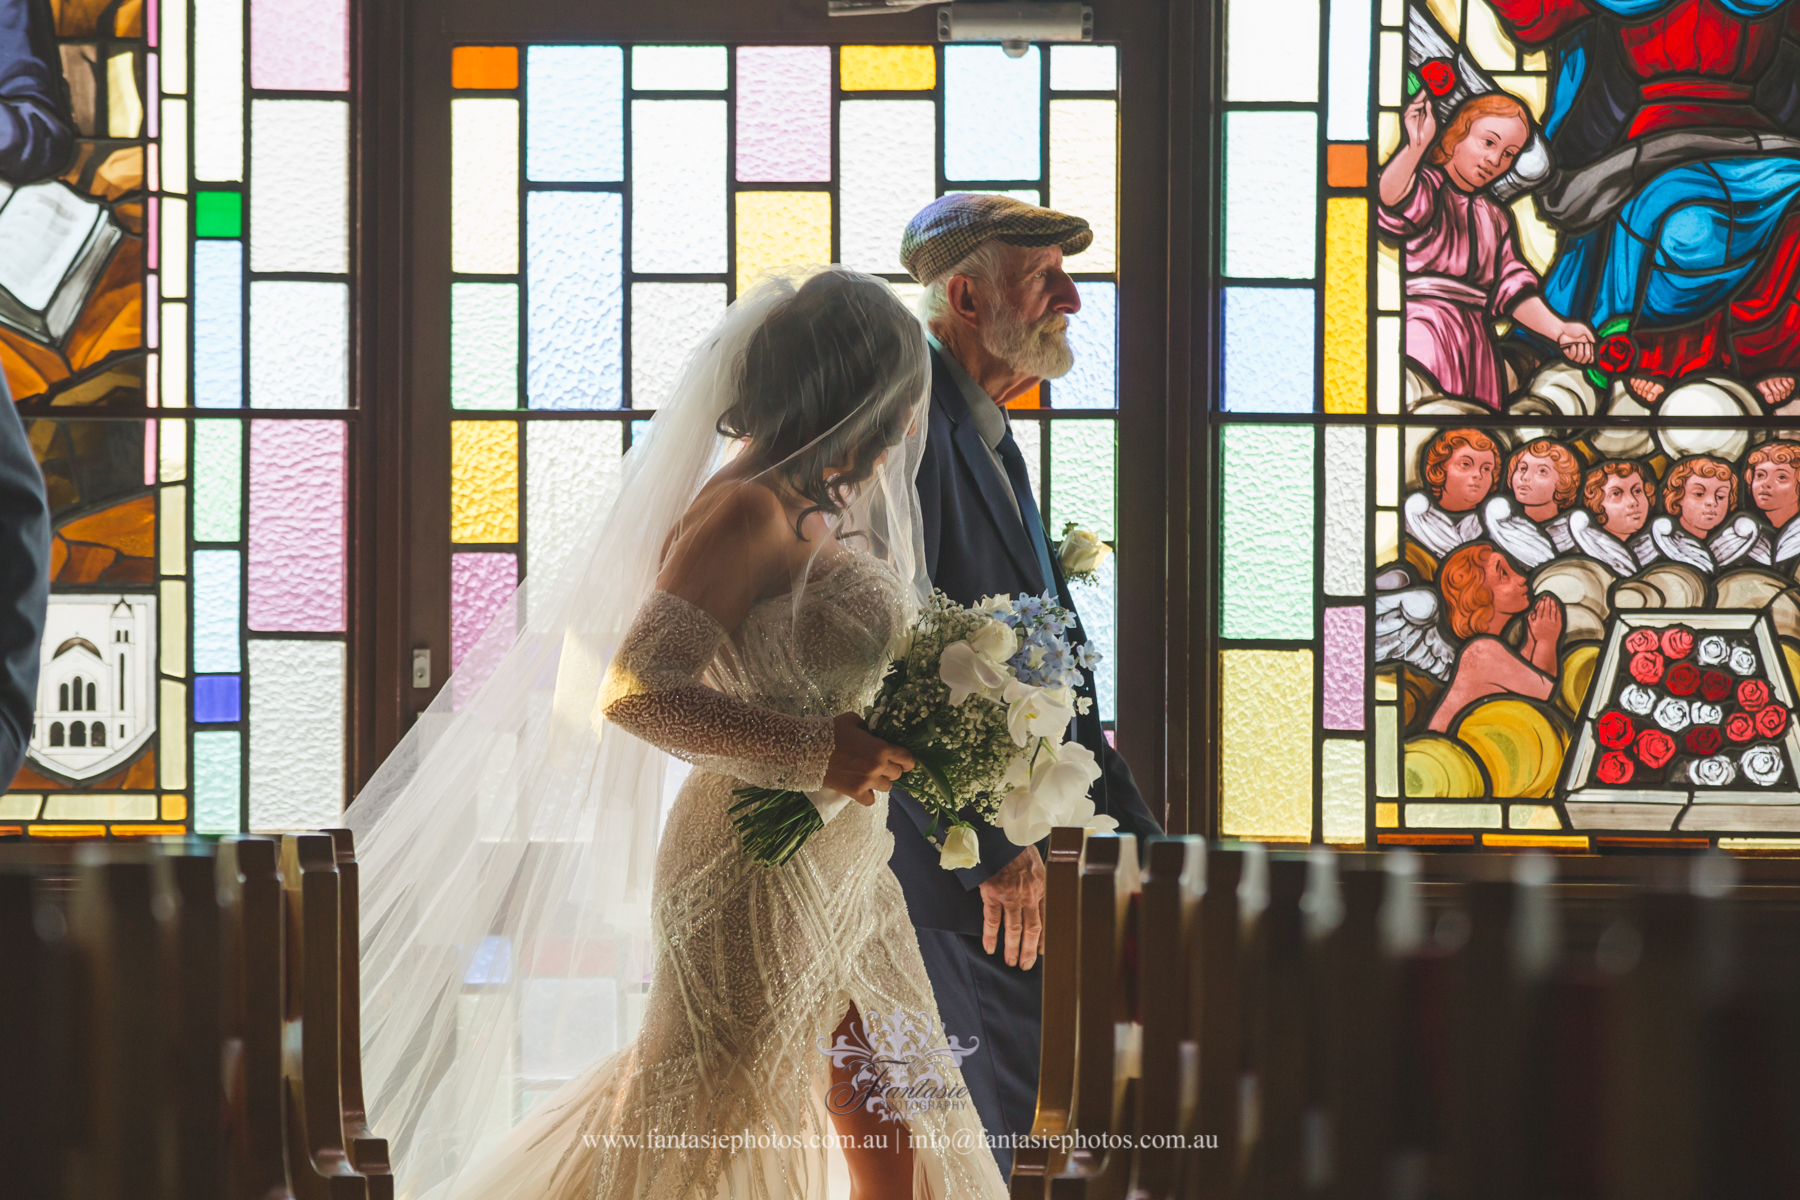 Wedding Photography Our Lady of Lebanon Co-Cathedral | Fantasie Photography